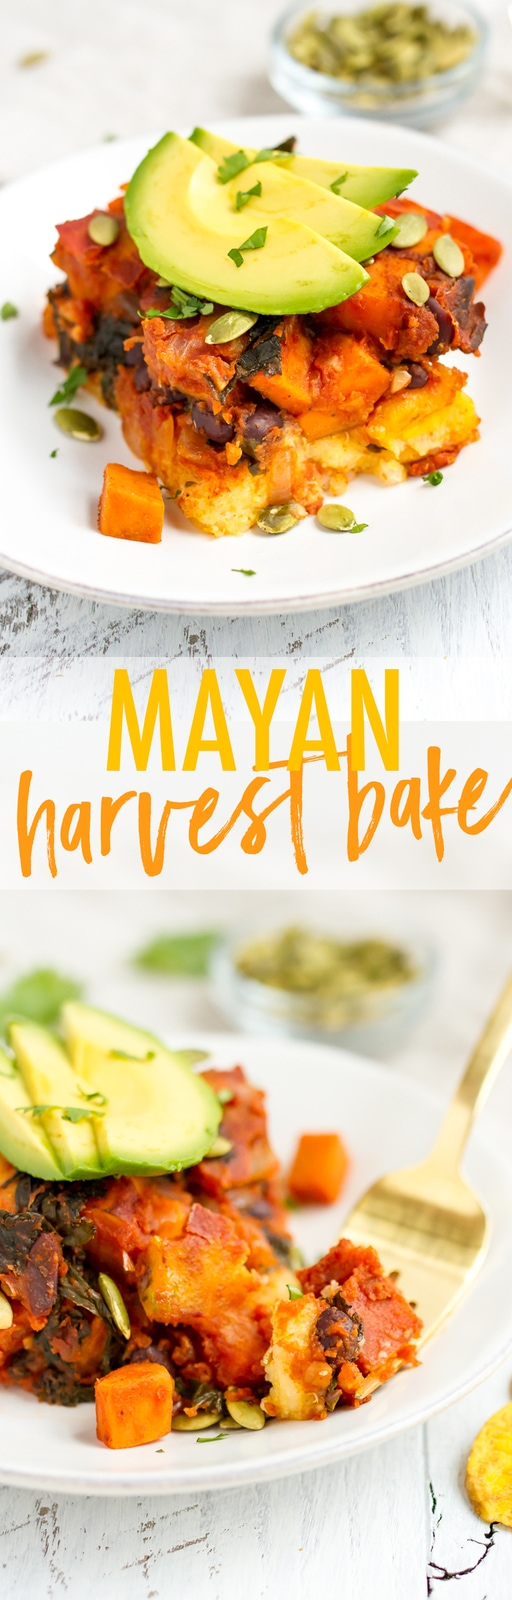 A homemade version of Kashi's Mayan Harvest Bake! This vegan + gluten-free casserole has layers of polenta and quinoa with roasted sweet potatoes, plantains, kale and black beans all in a rich ancho chile sauce.